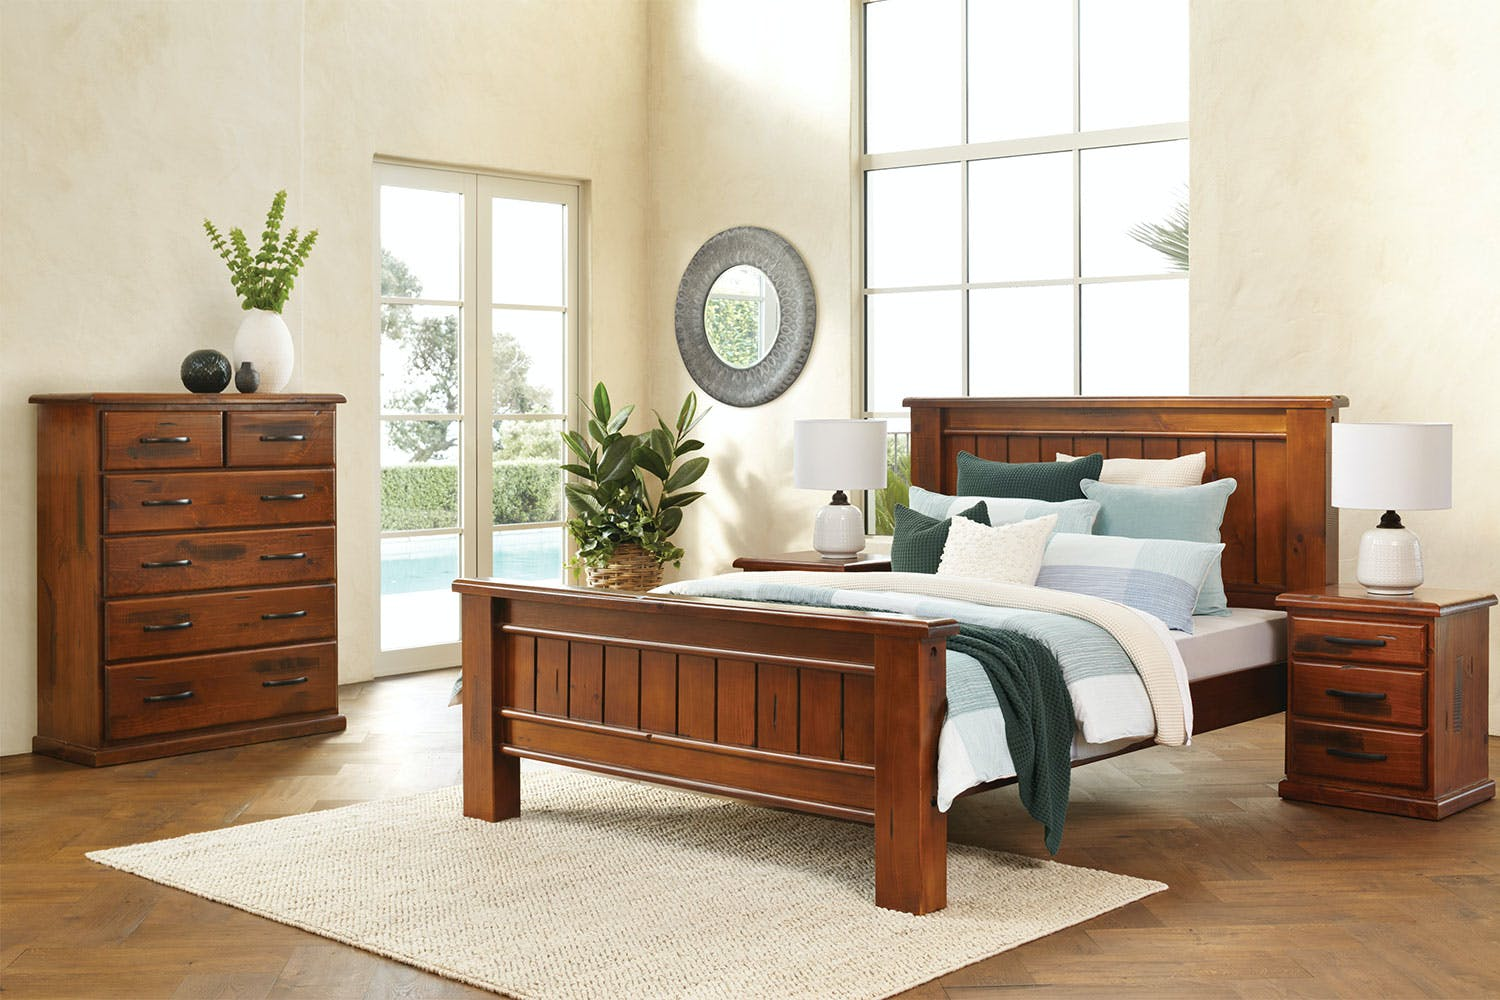 Rye Bedroom Suite by John Young Furniture